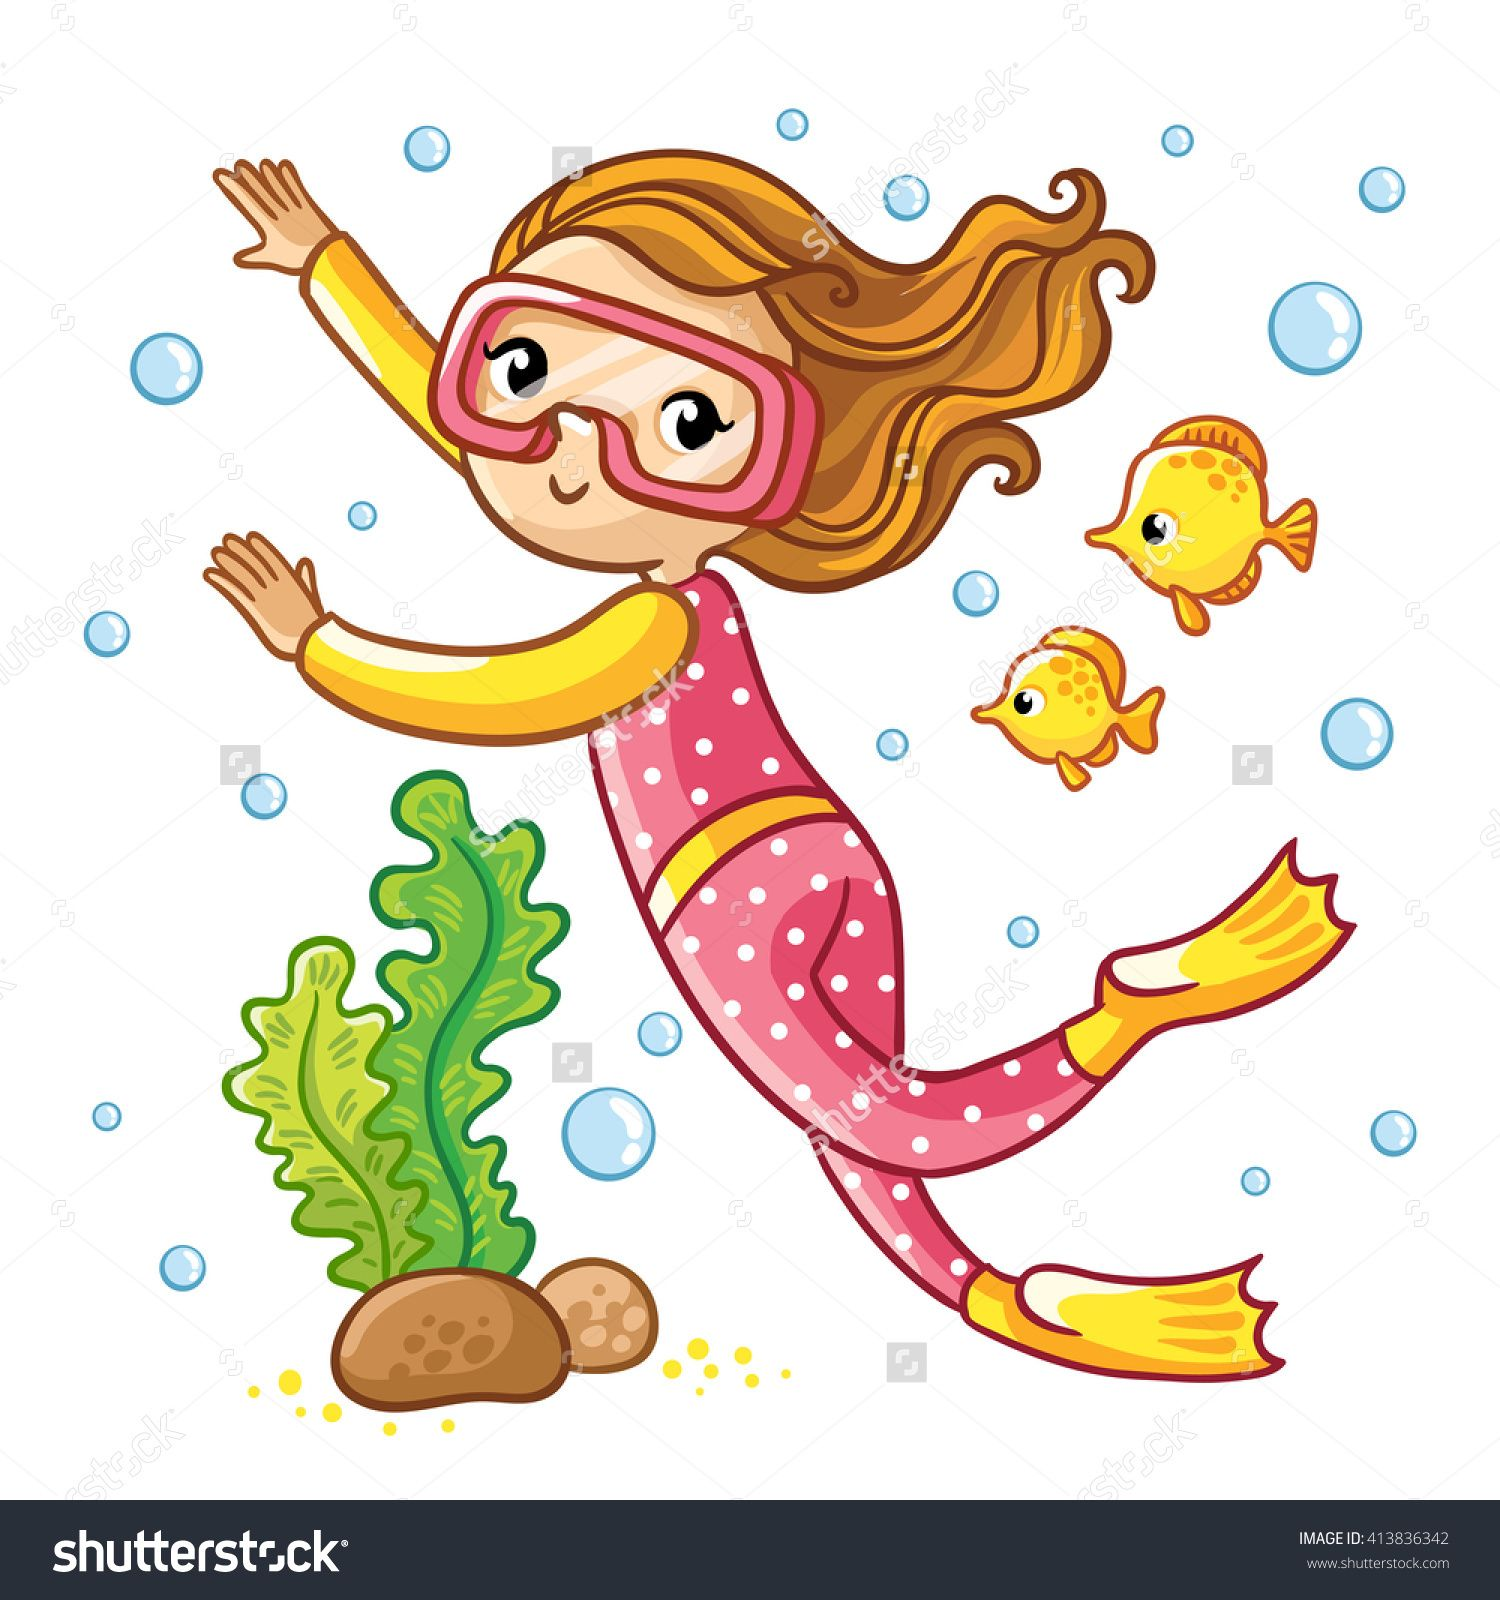 Diving clipart water clipart. Scuba girl swimming under